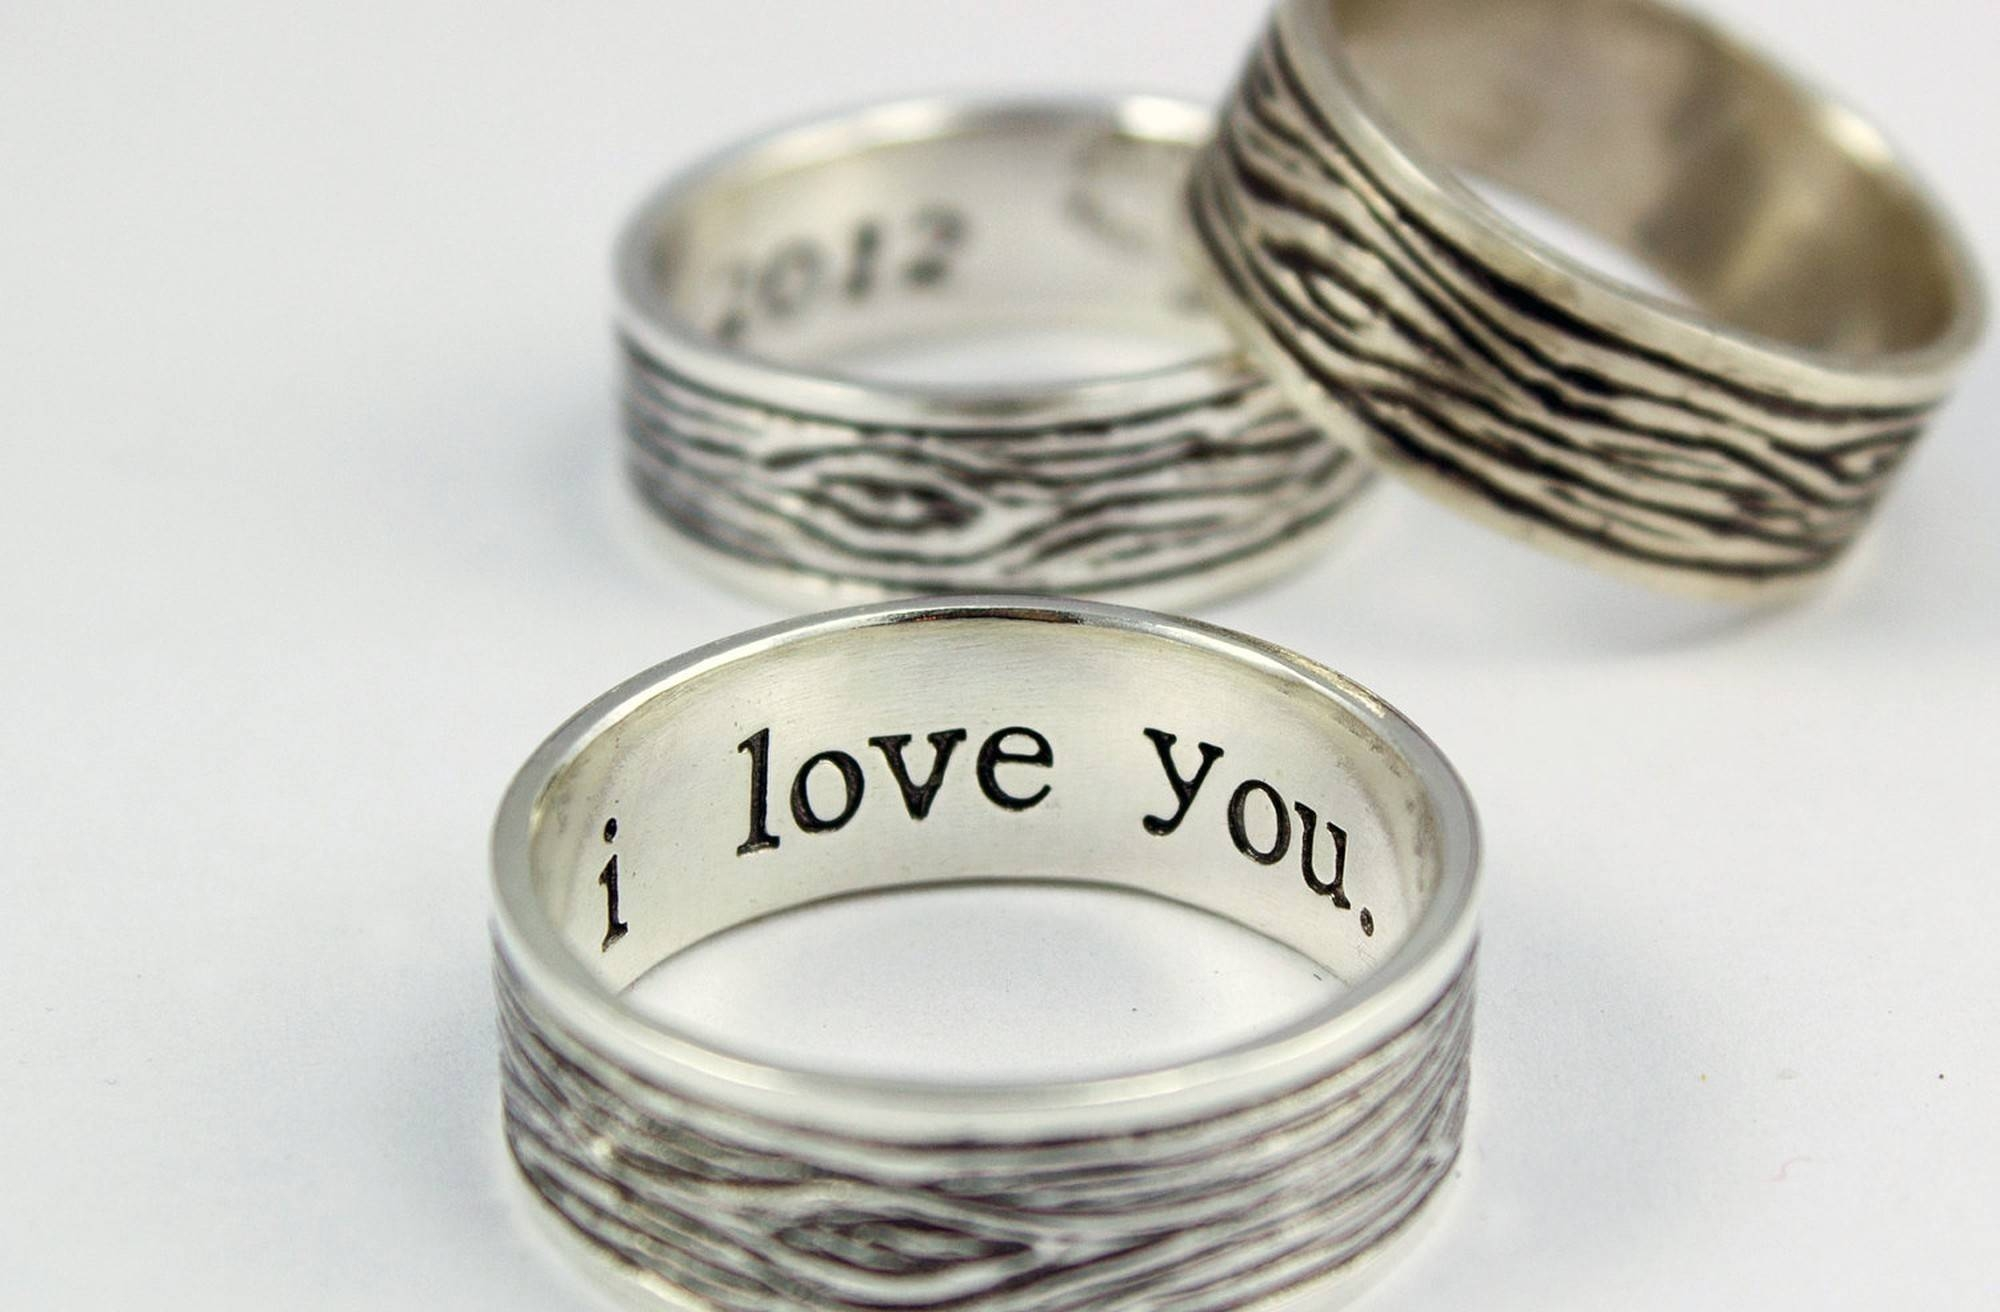 scottish wedding rings for men new mens titanium camo wedding with mens scottish wedding bands - Scottish Wedding Rings